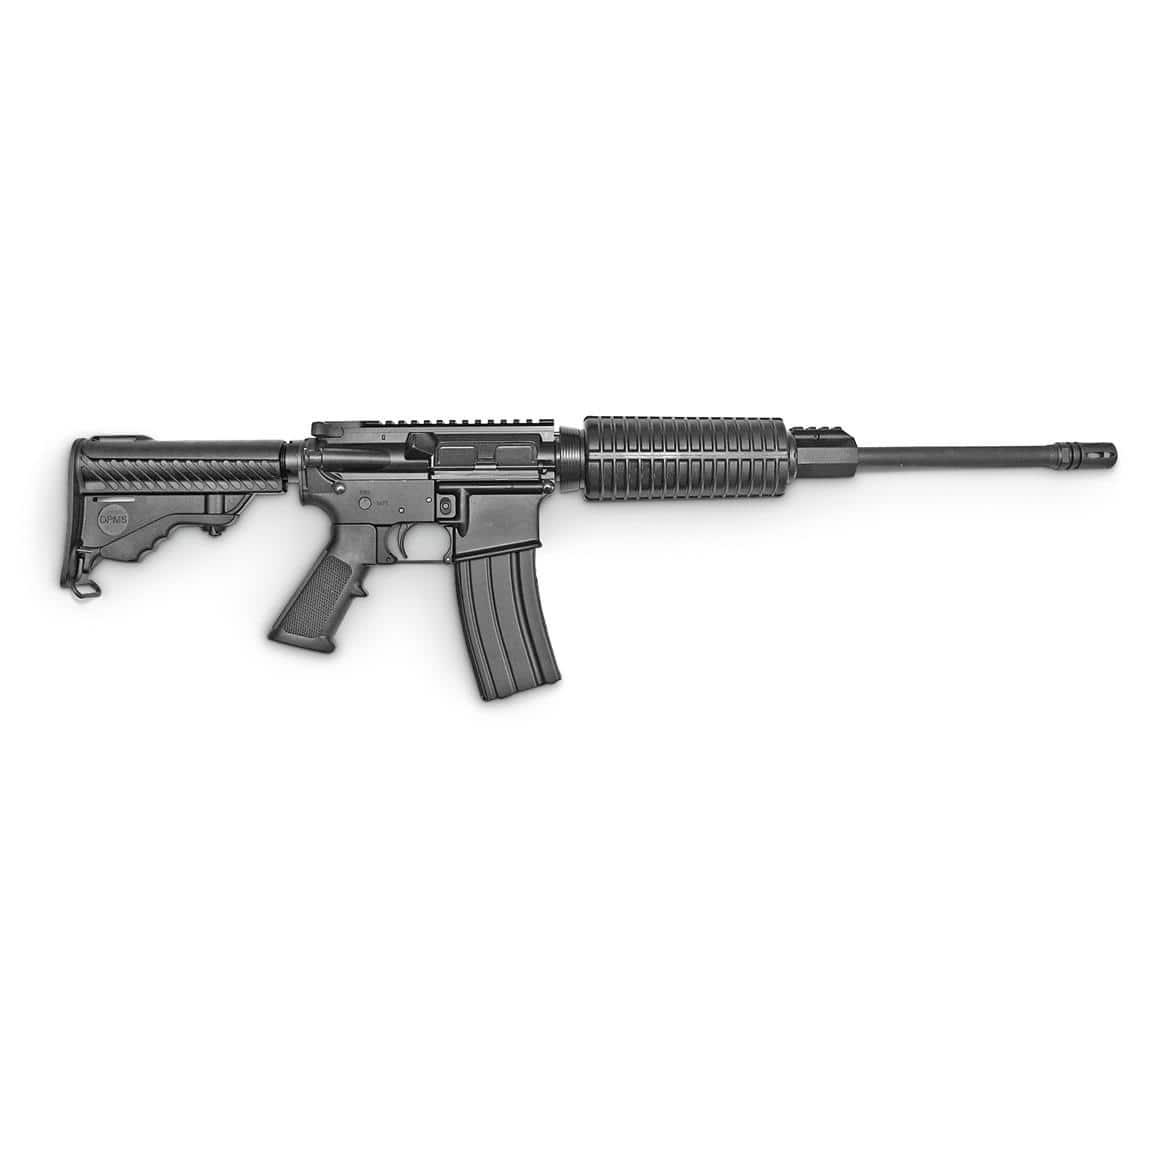 "DPMS Panther Oracle ""AR-15"" Rifle 5.56/.223 W/ 30rd magazine $418.23 + Free Shipping"